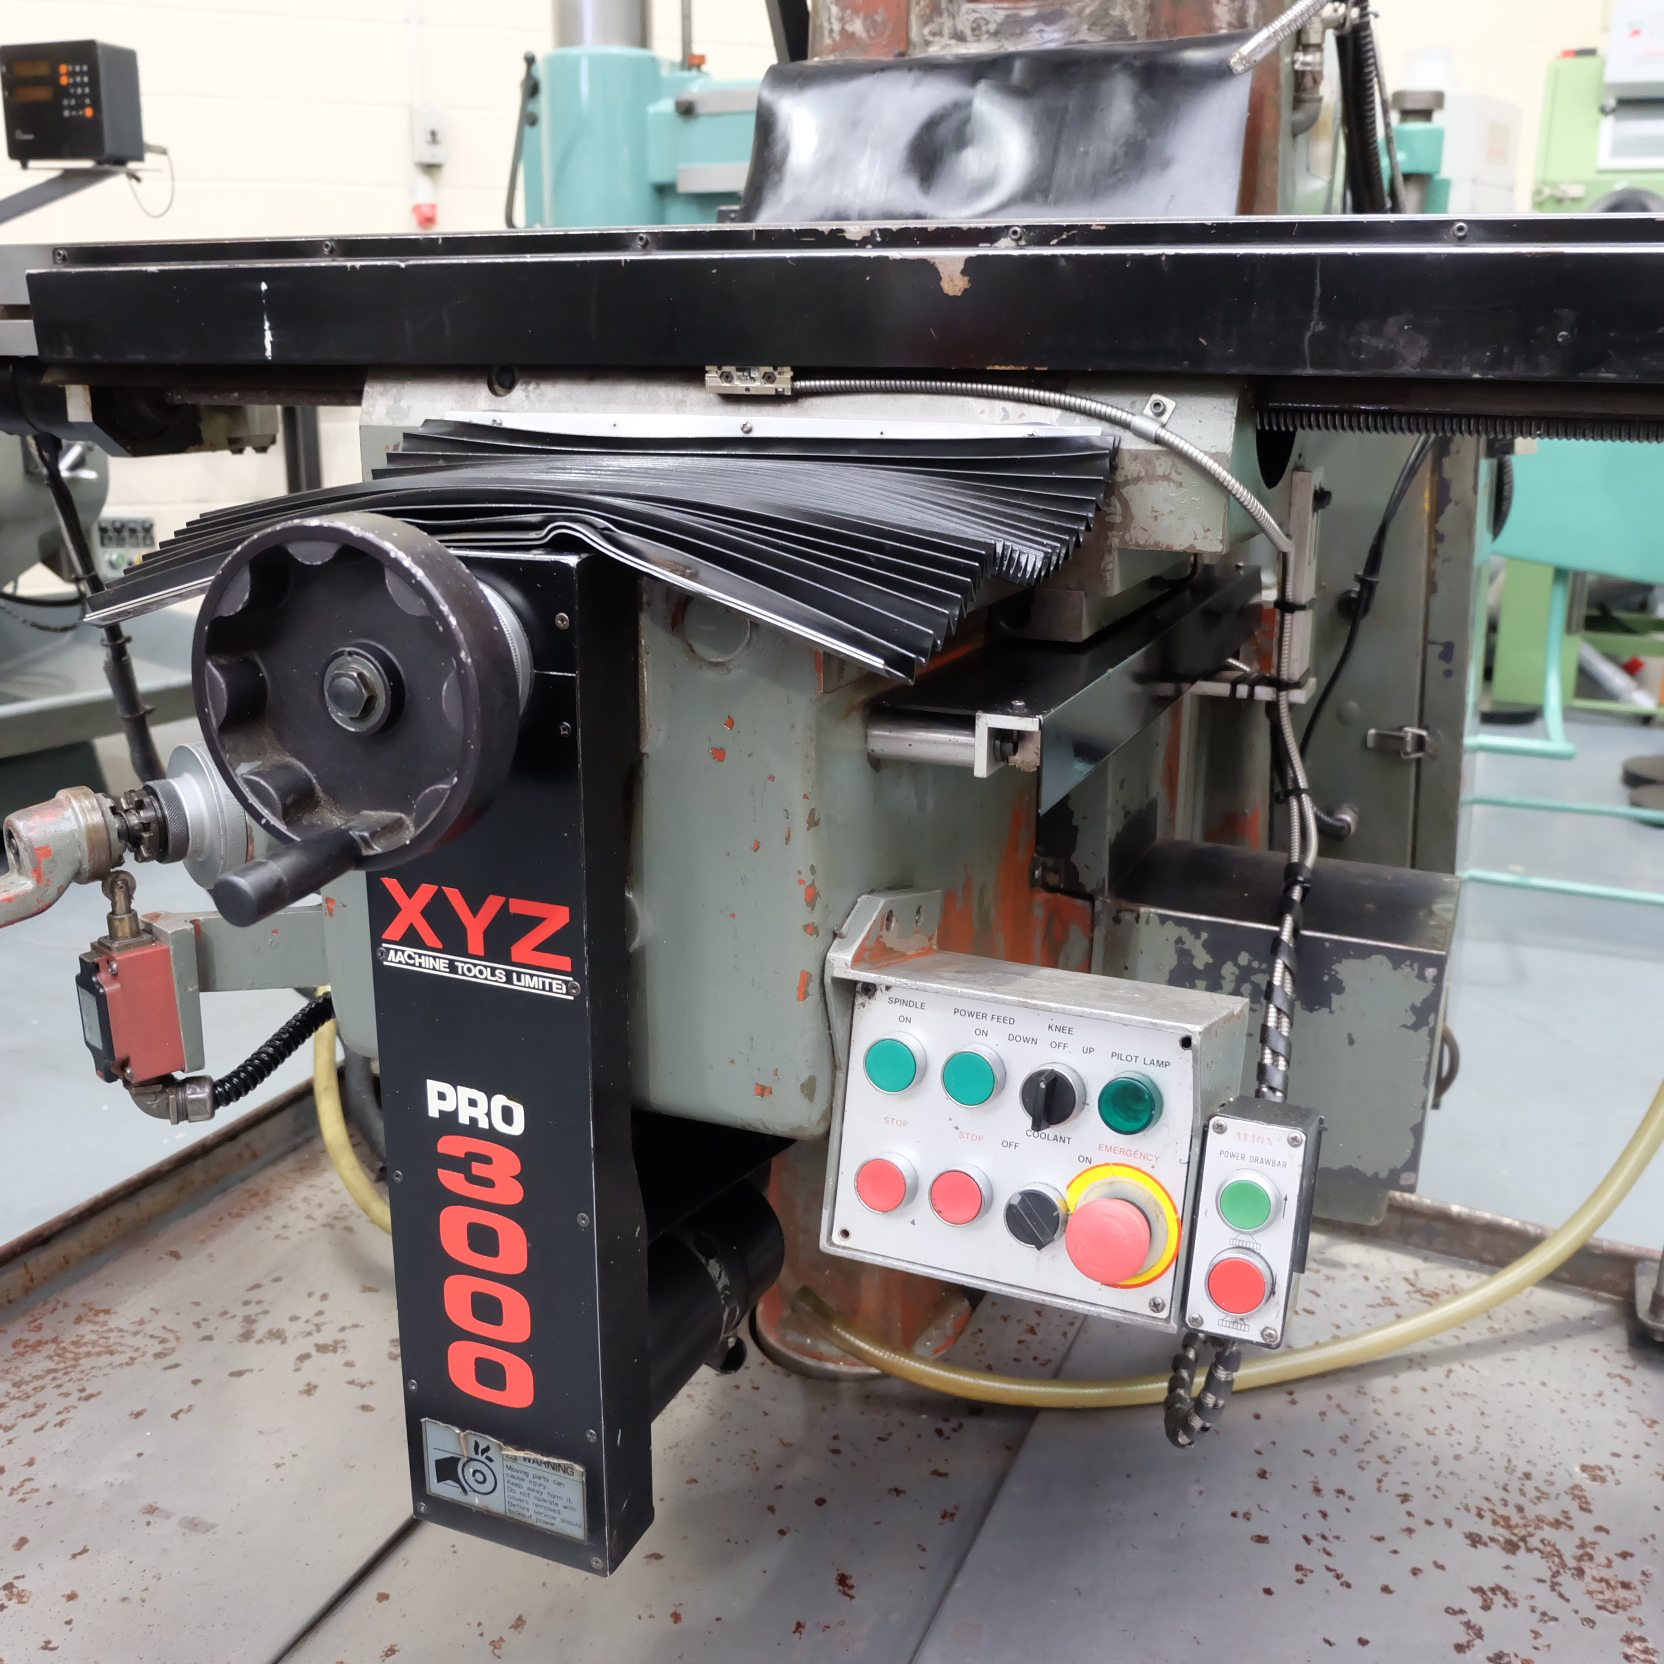 XYZ Pro3000: Turret Mill. With Prototrak MX2 Two Axis Programmable Control. - Image 7 of 10